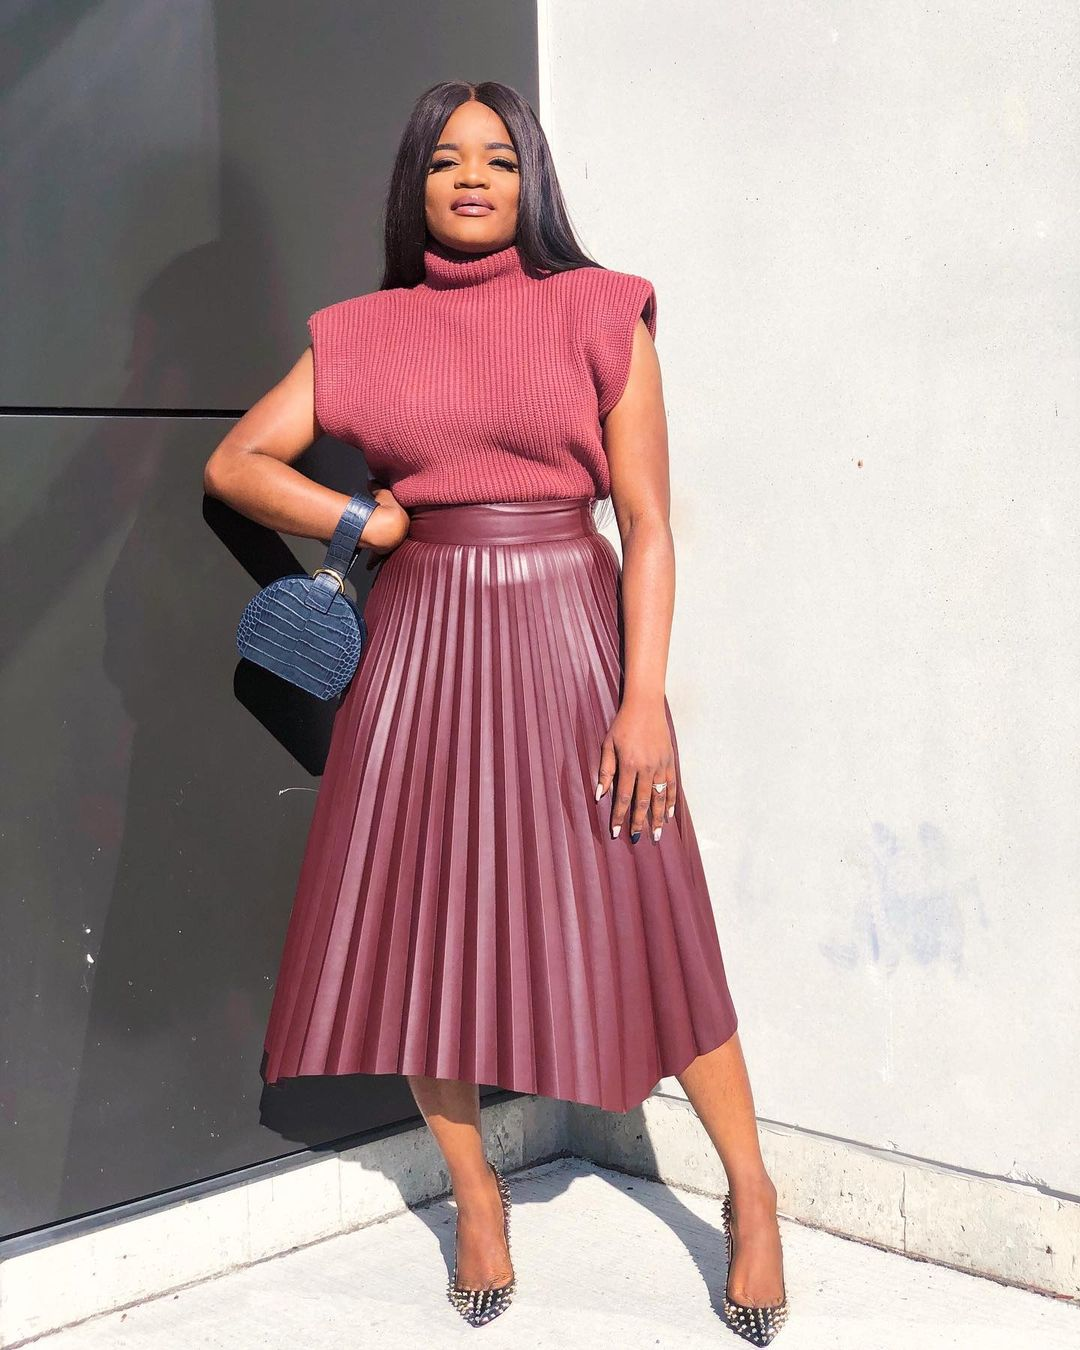 This fashion Influencer Has On-Point Ensembles to Inspire the Everyday #BellaStylista